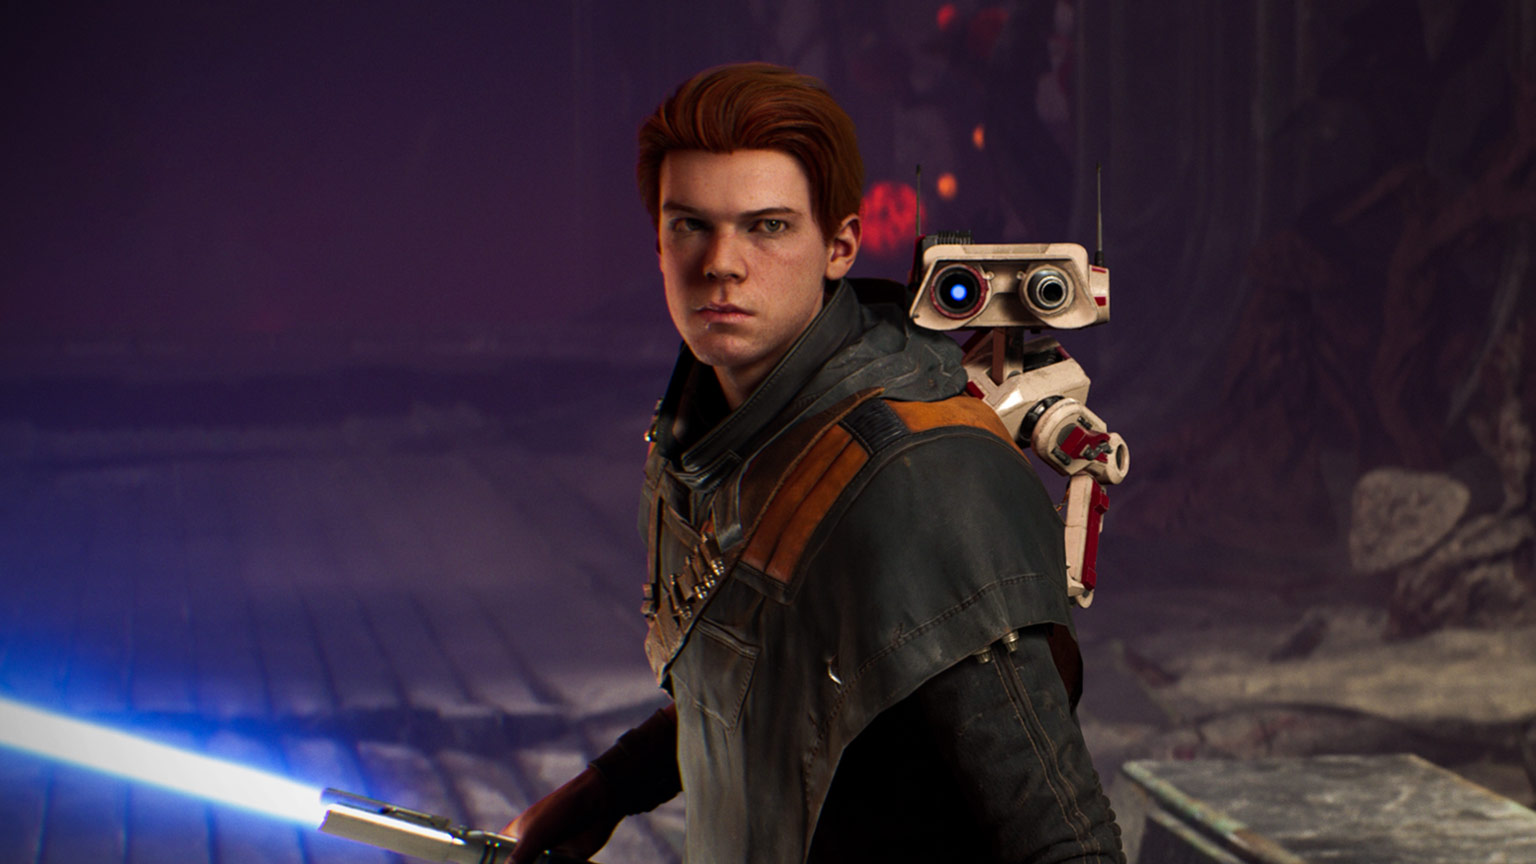 Cal and BD-1 in Star Wars Jedi: Fallen Order